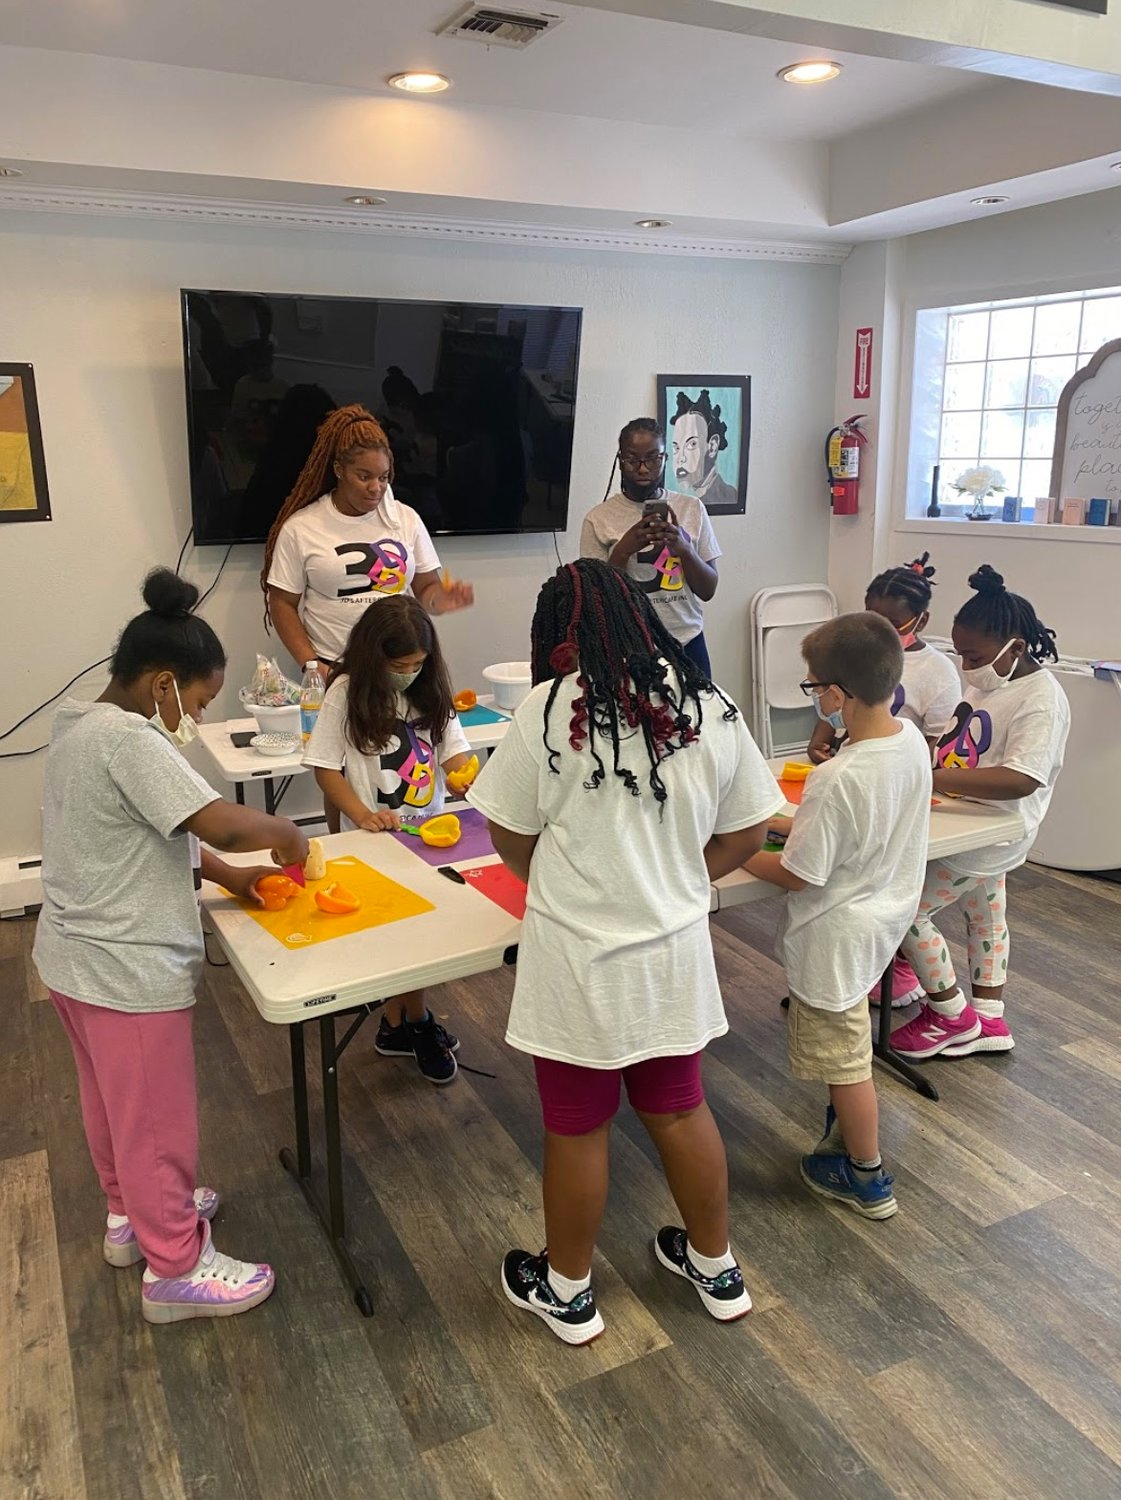 Children attending 3D's Aftercare Inc. in Baldwin tried their hands at cooking. The center, which has been adjusting to the pandemic, offers a variety of fun activities and courses to hone children's skills.